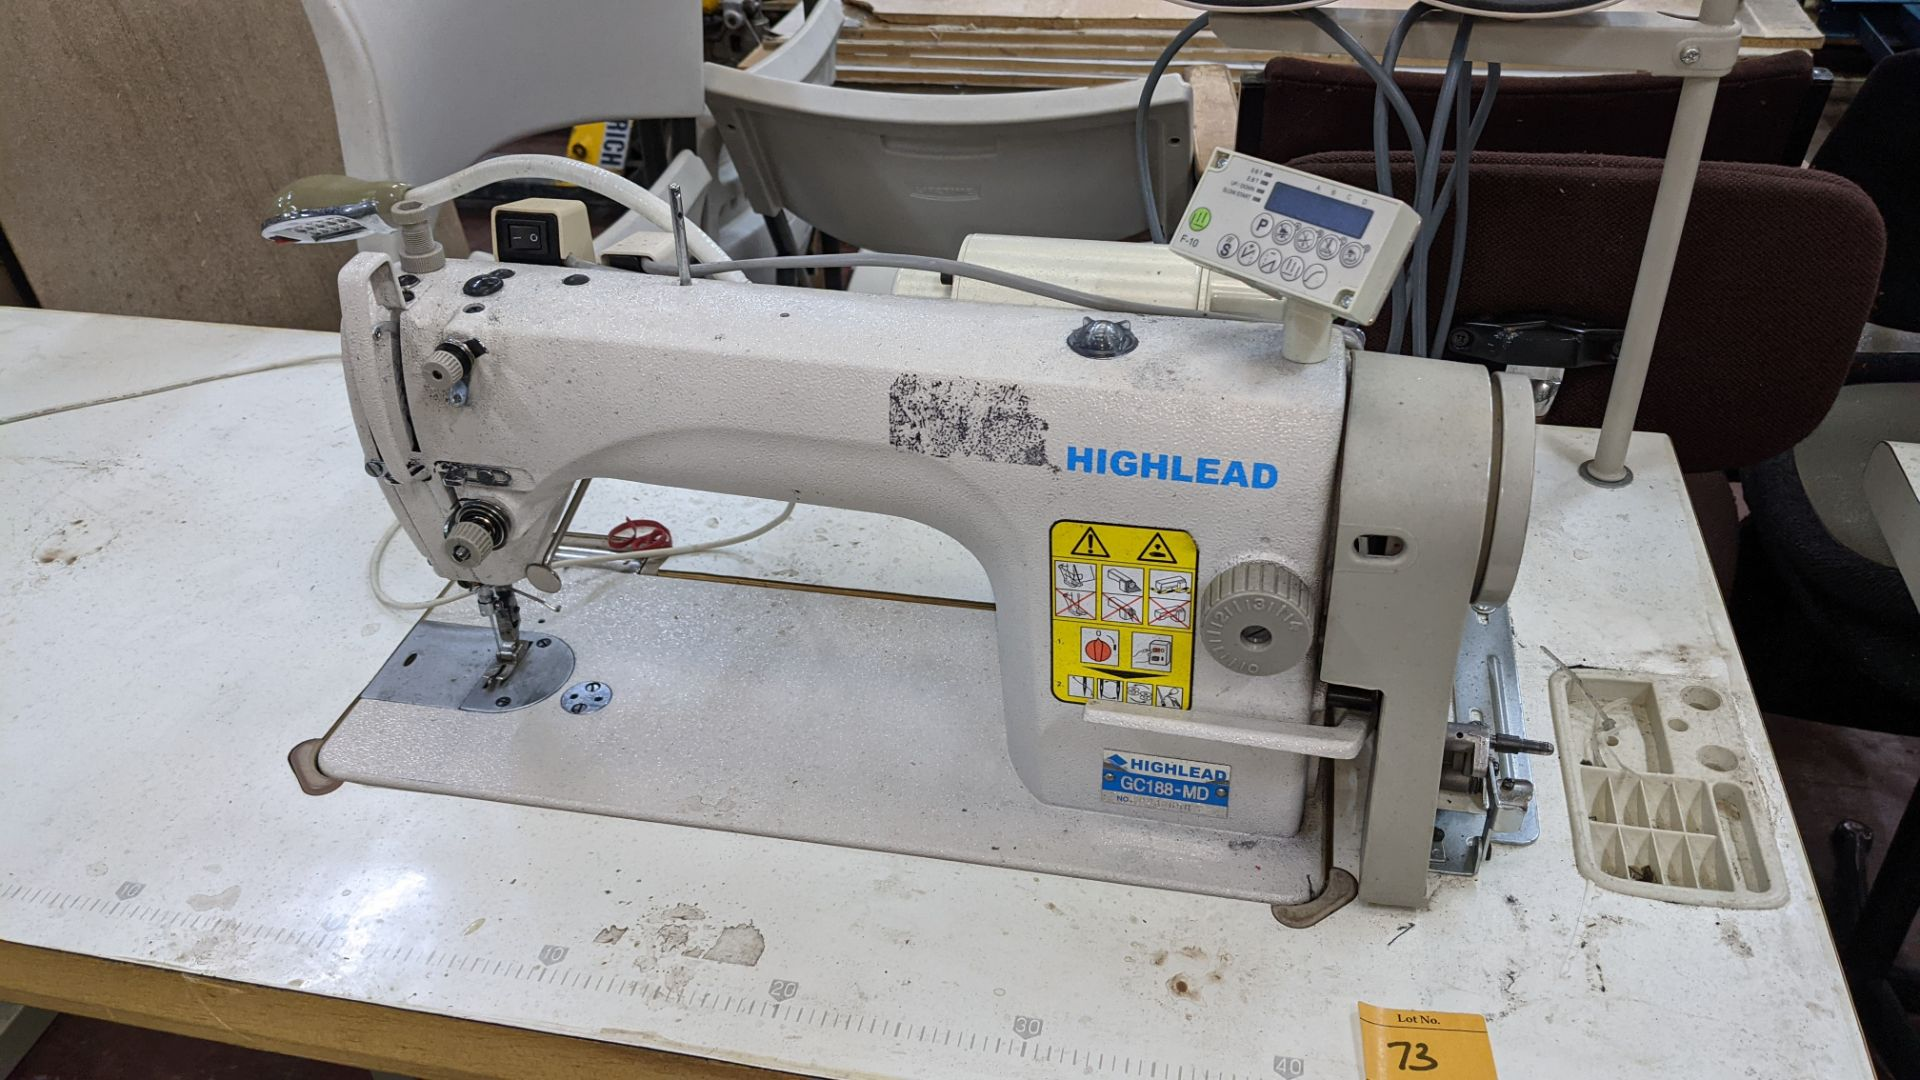 Highlead model GC188-MD sewing machine with model F-10 digital controller - Image 5 of 16